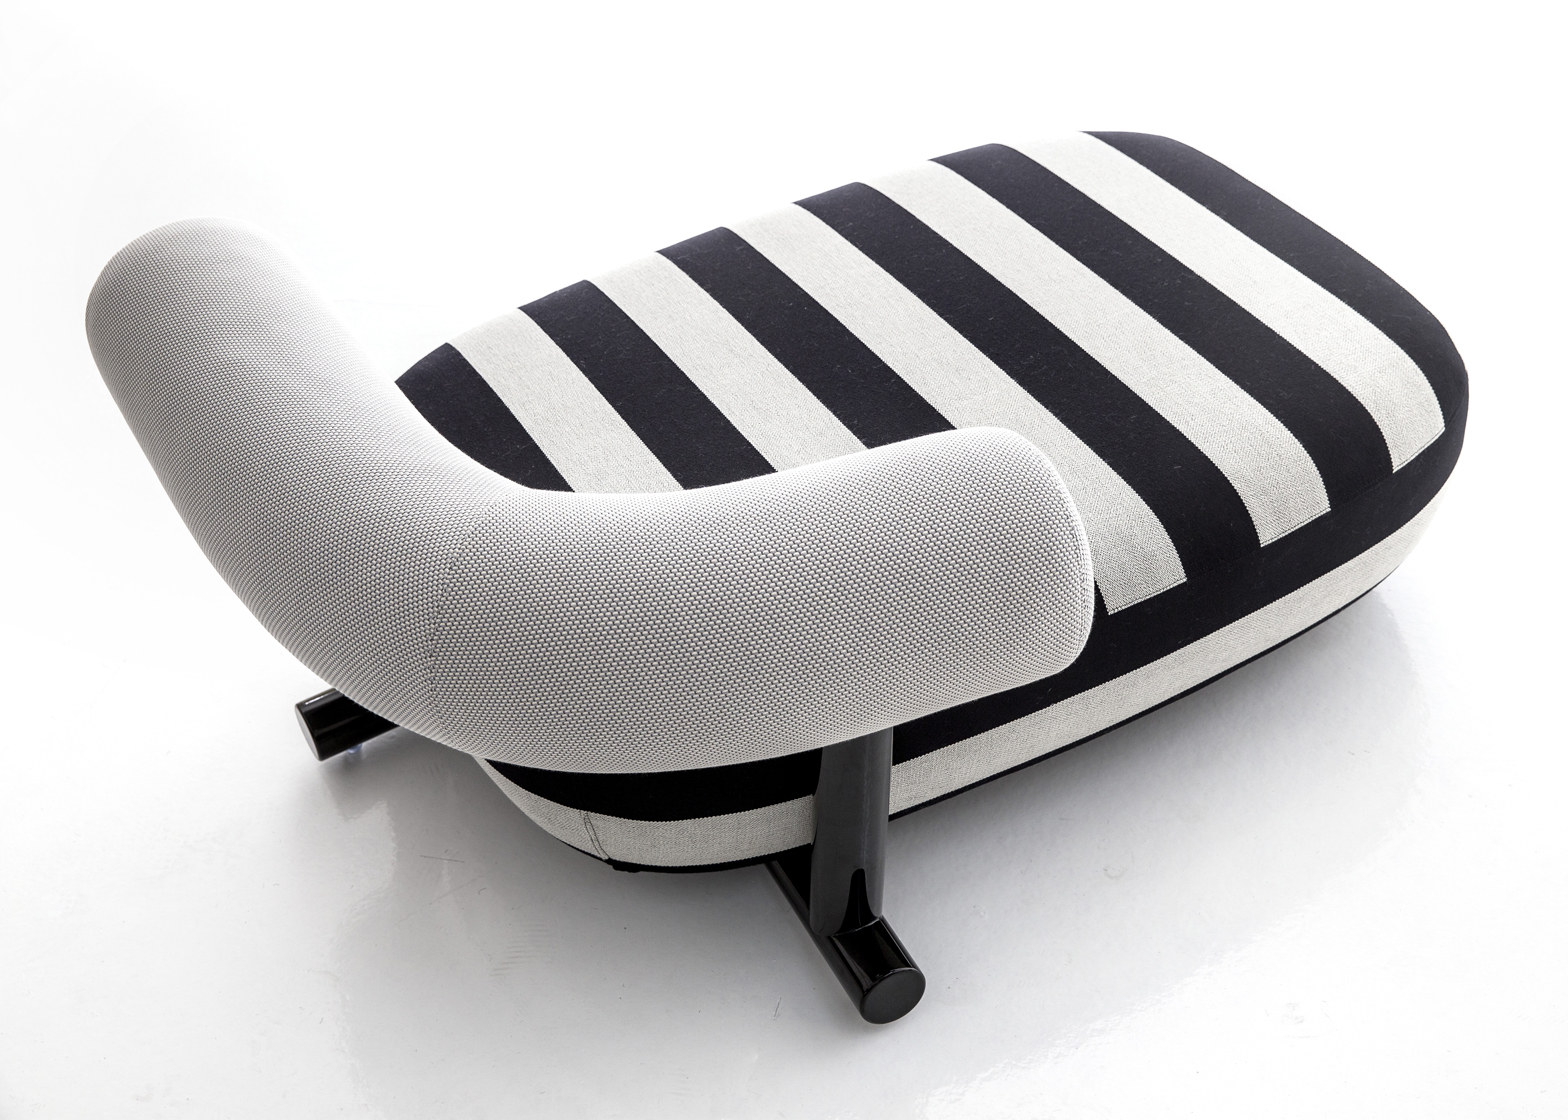 Pipe chaise longue by Sebastian Herkner for Moroso